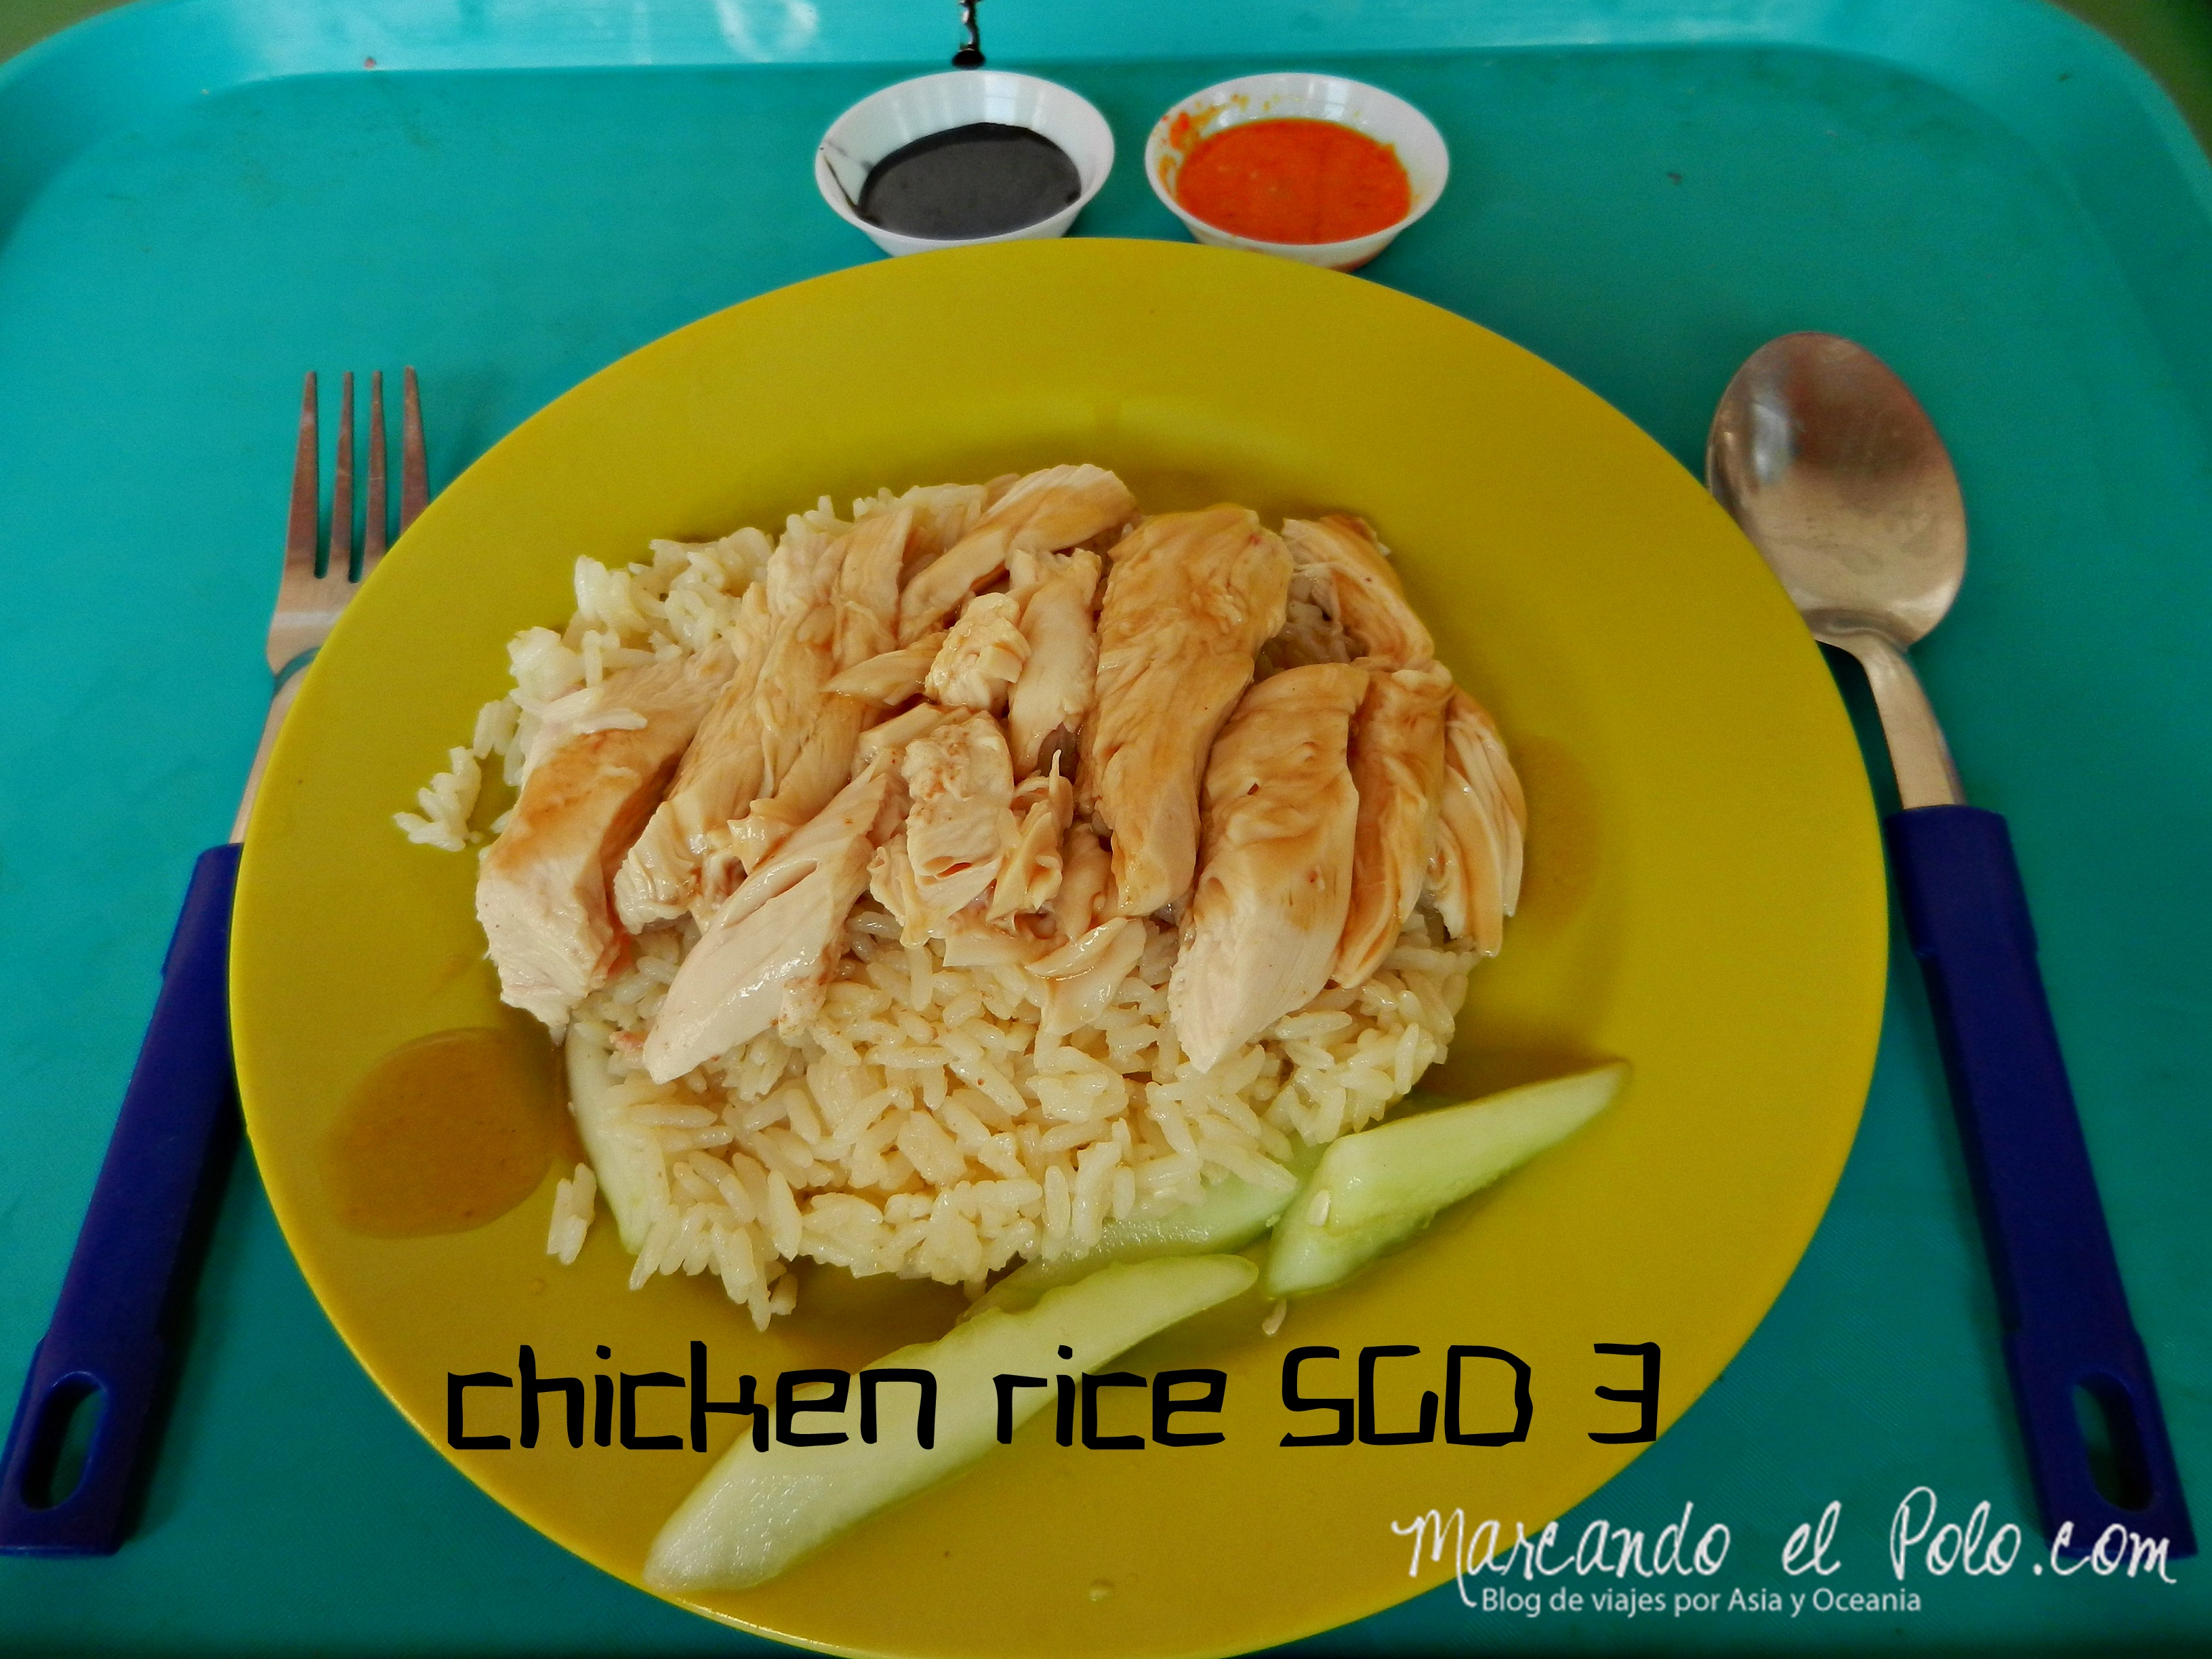 Chicken Rice en Singapur, Asia